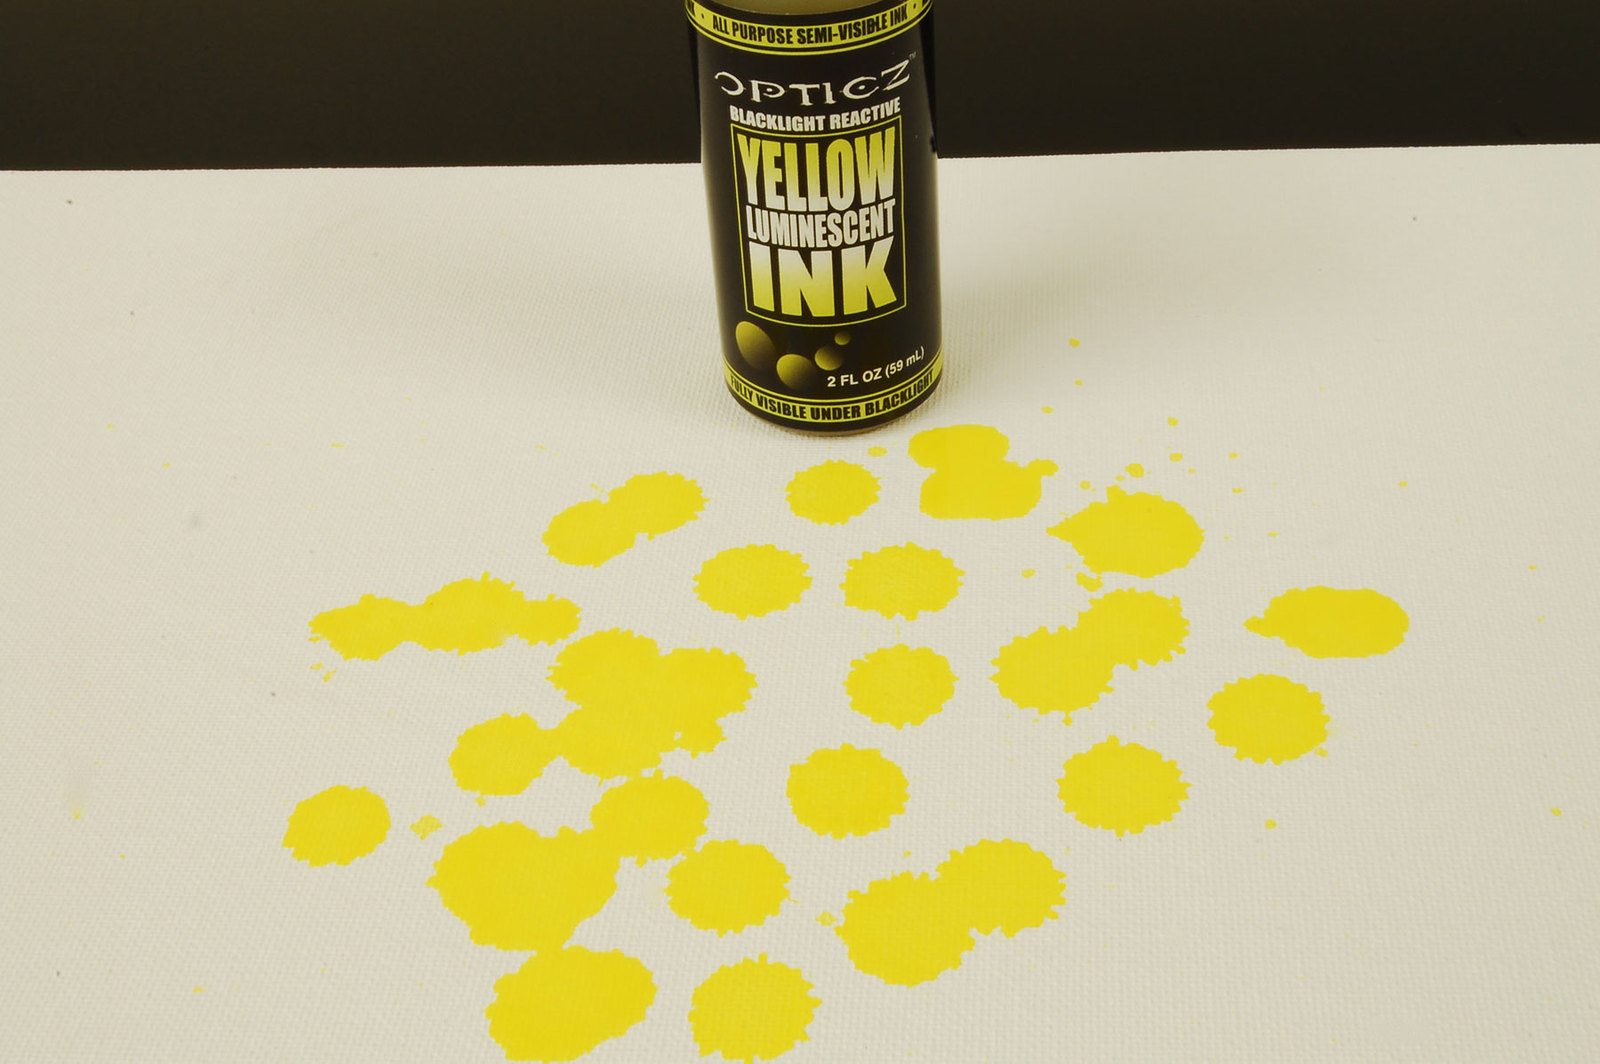 2oz Opticz Daytime Visible Yellow Luminescent UV Blacklight Reactive Ink